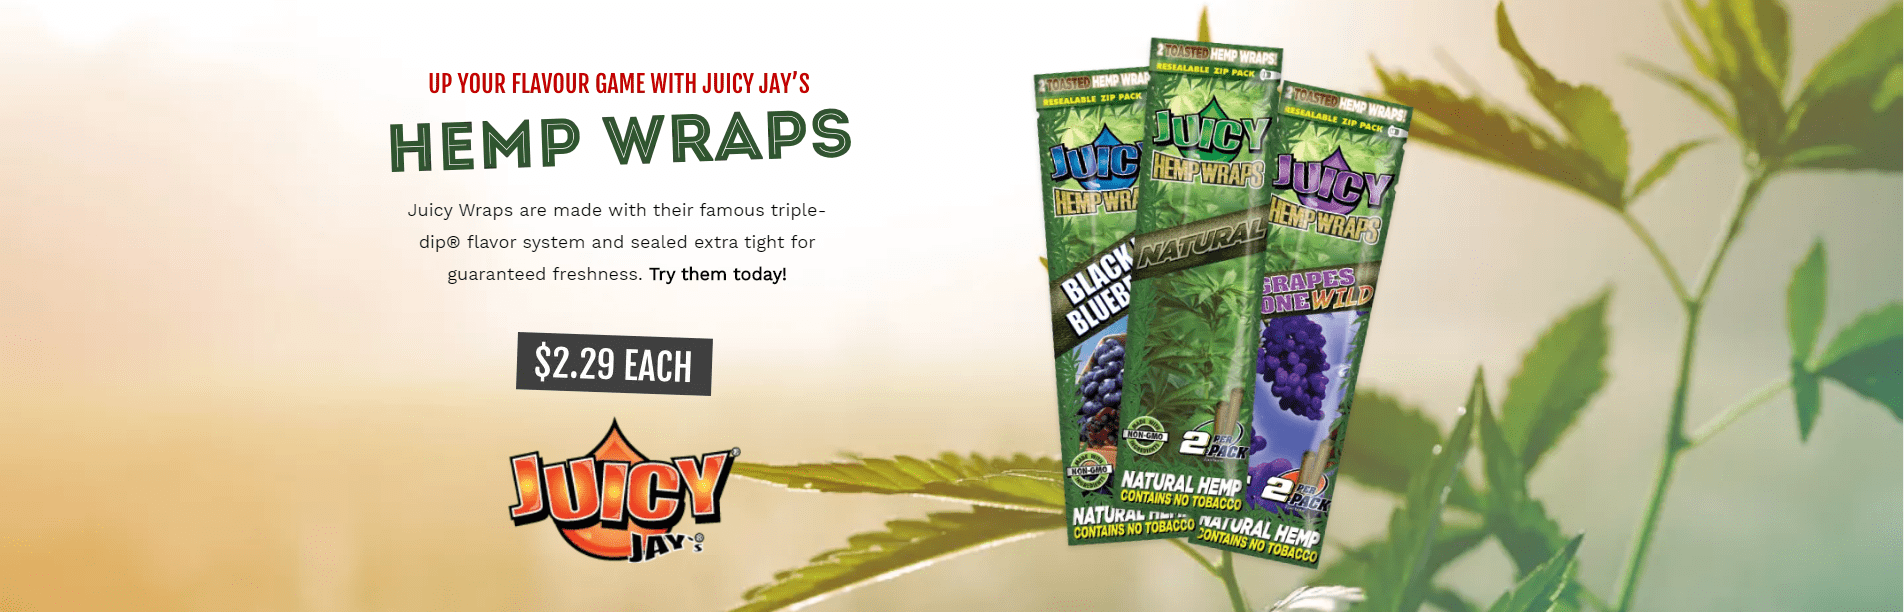 Juicy Jay Flavored Papers